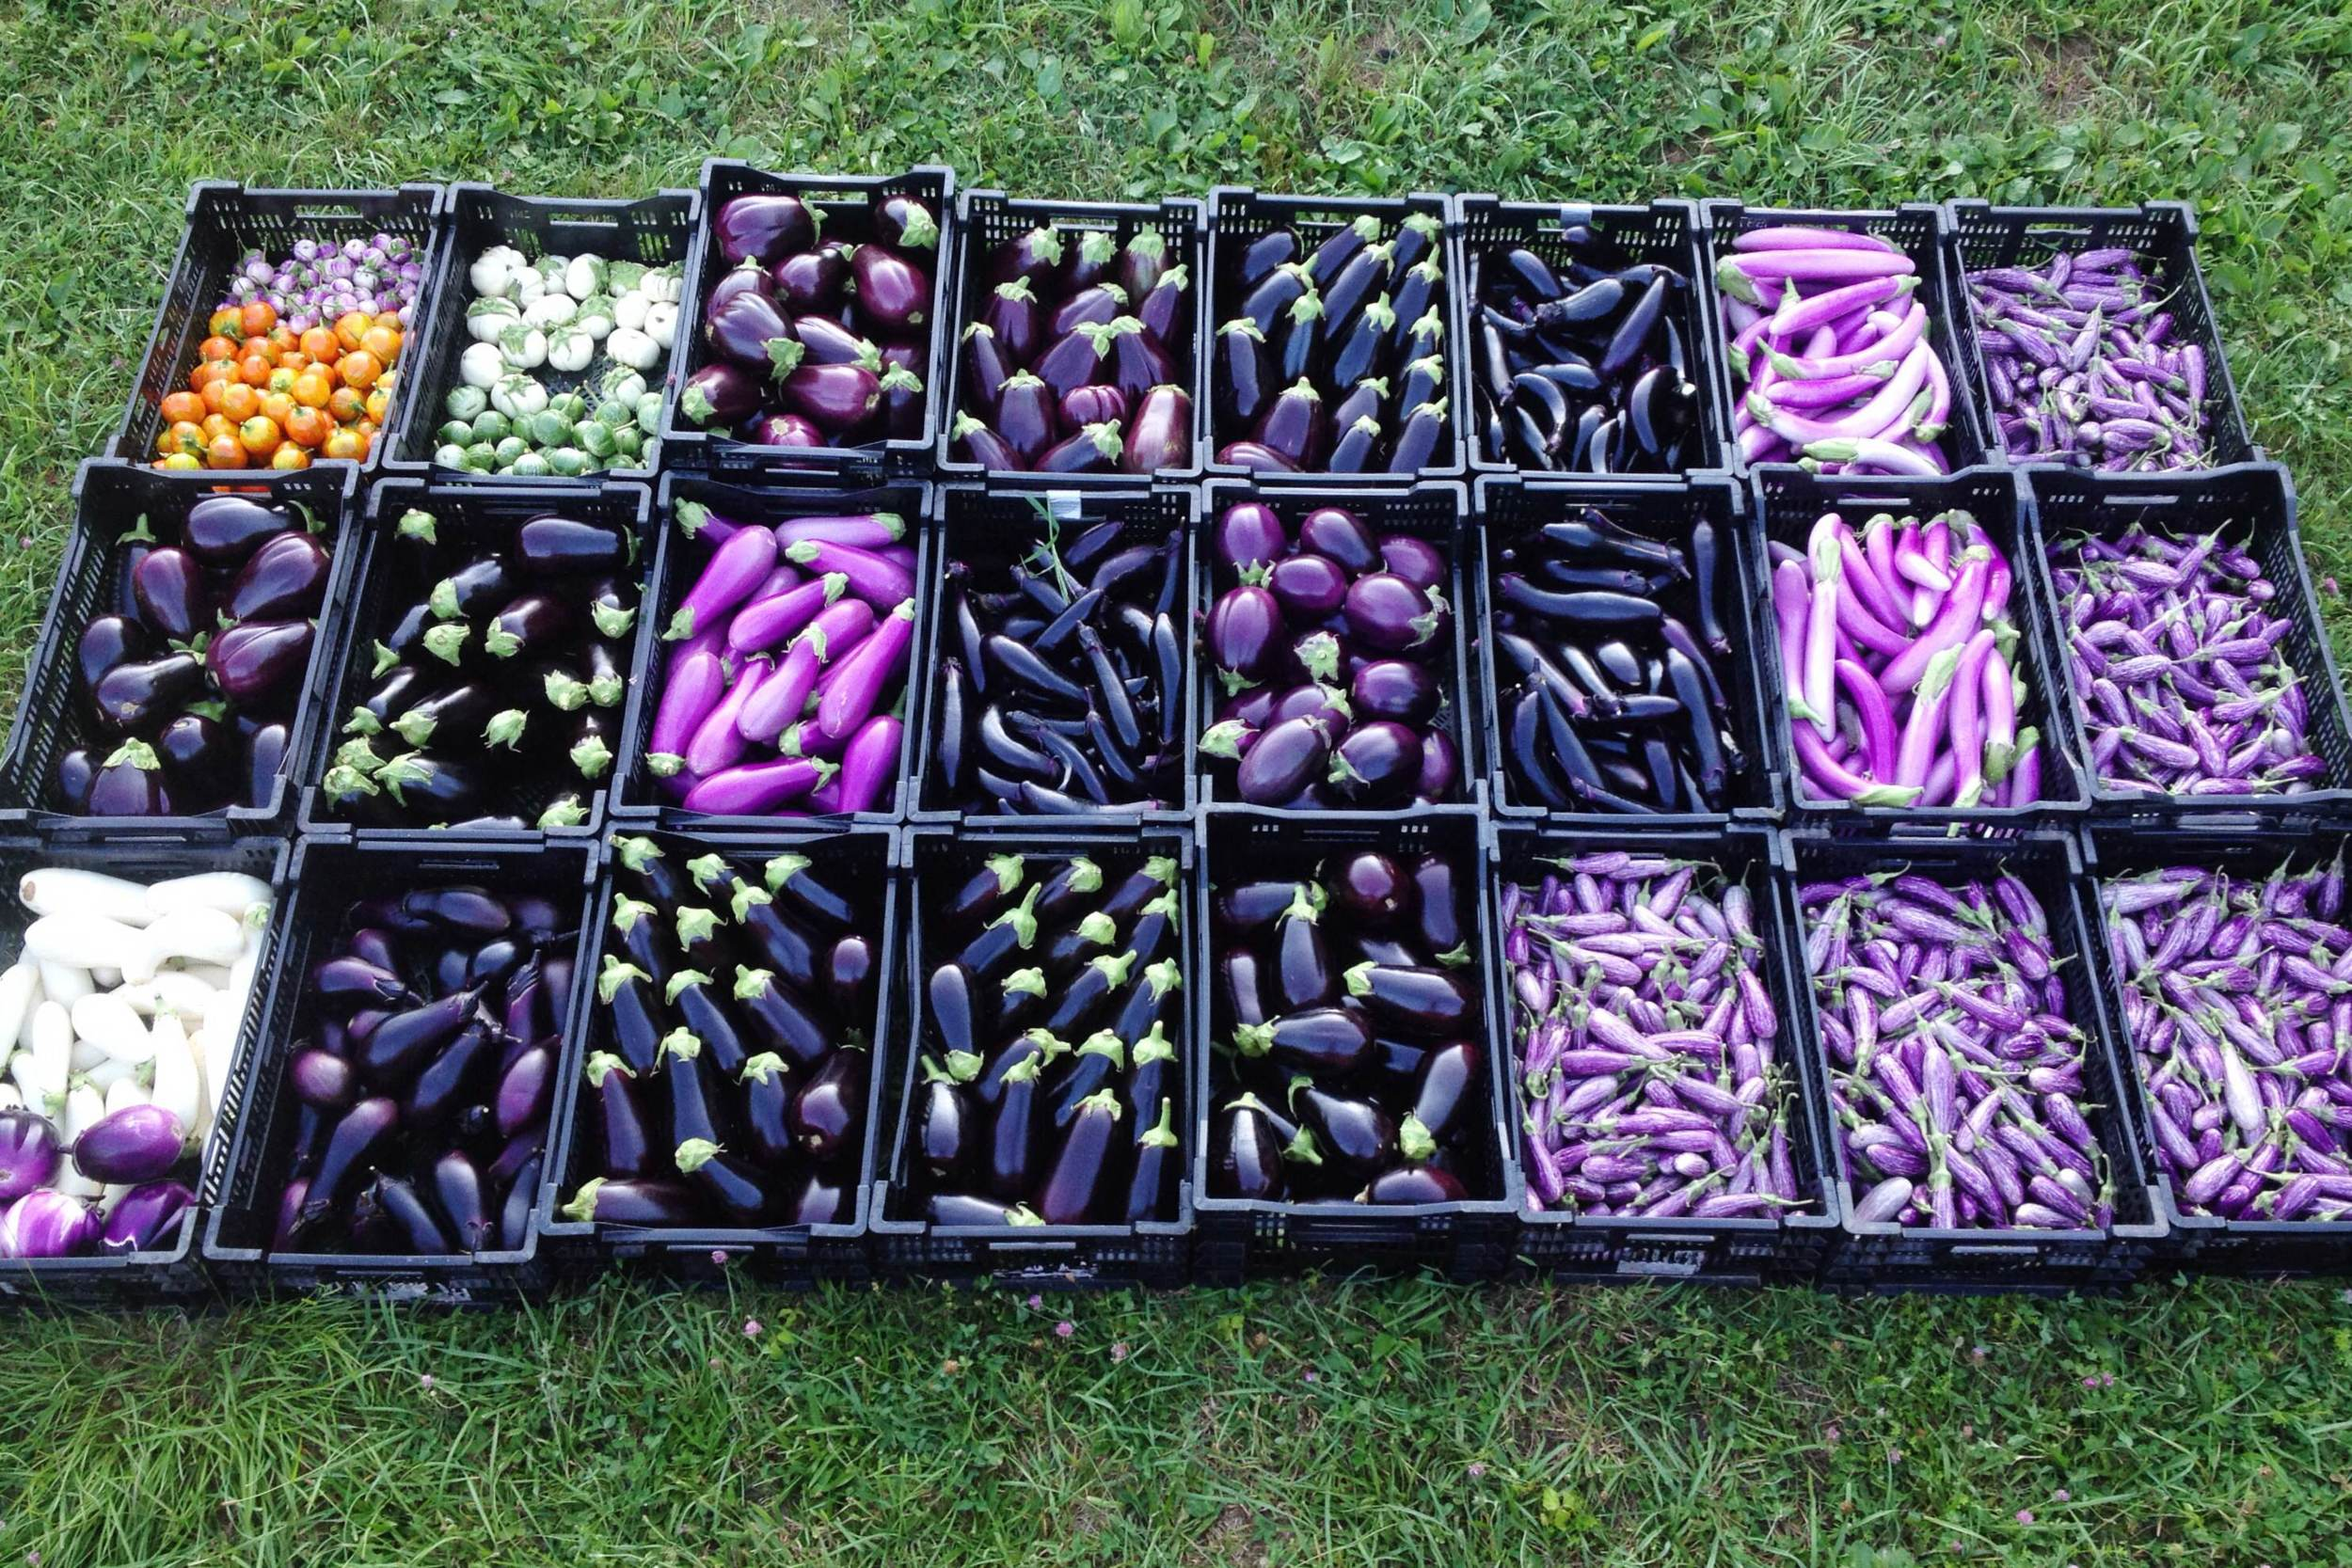 In case you're wondering what 450 pounds of eggplants look like, here it is.